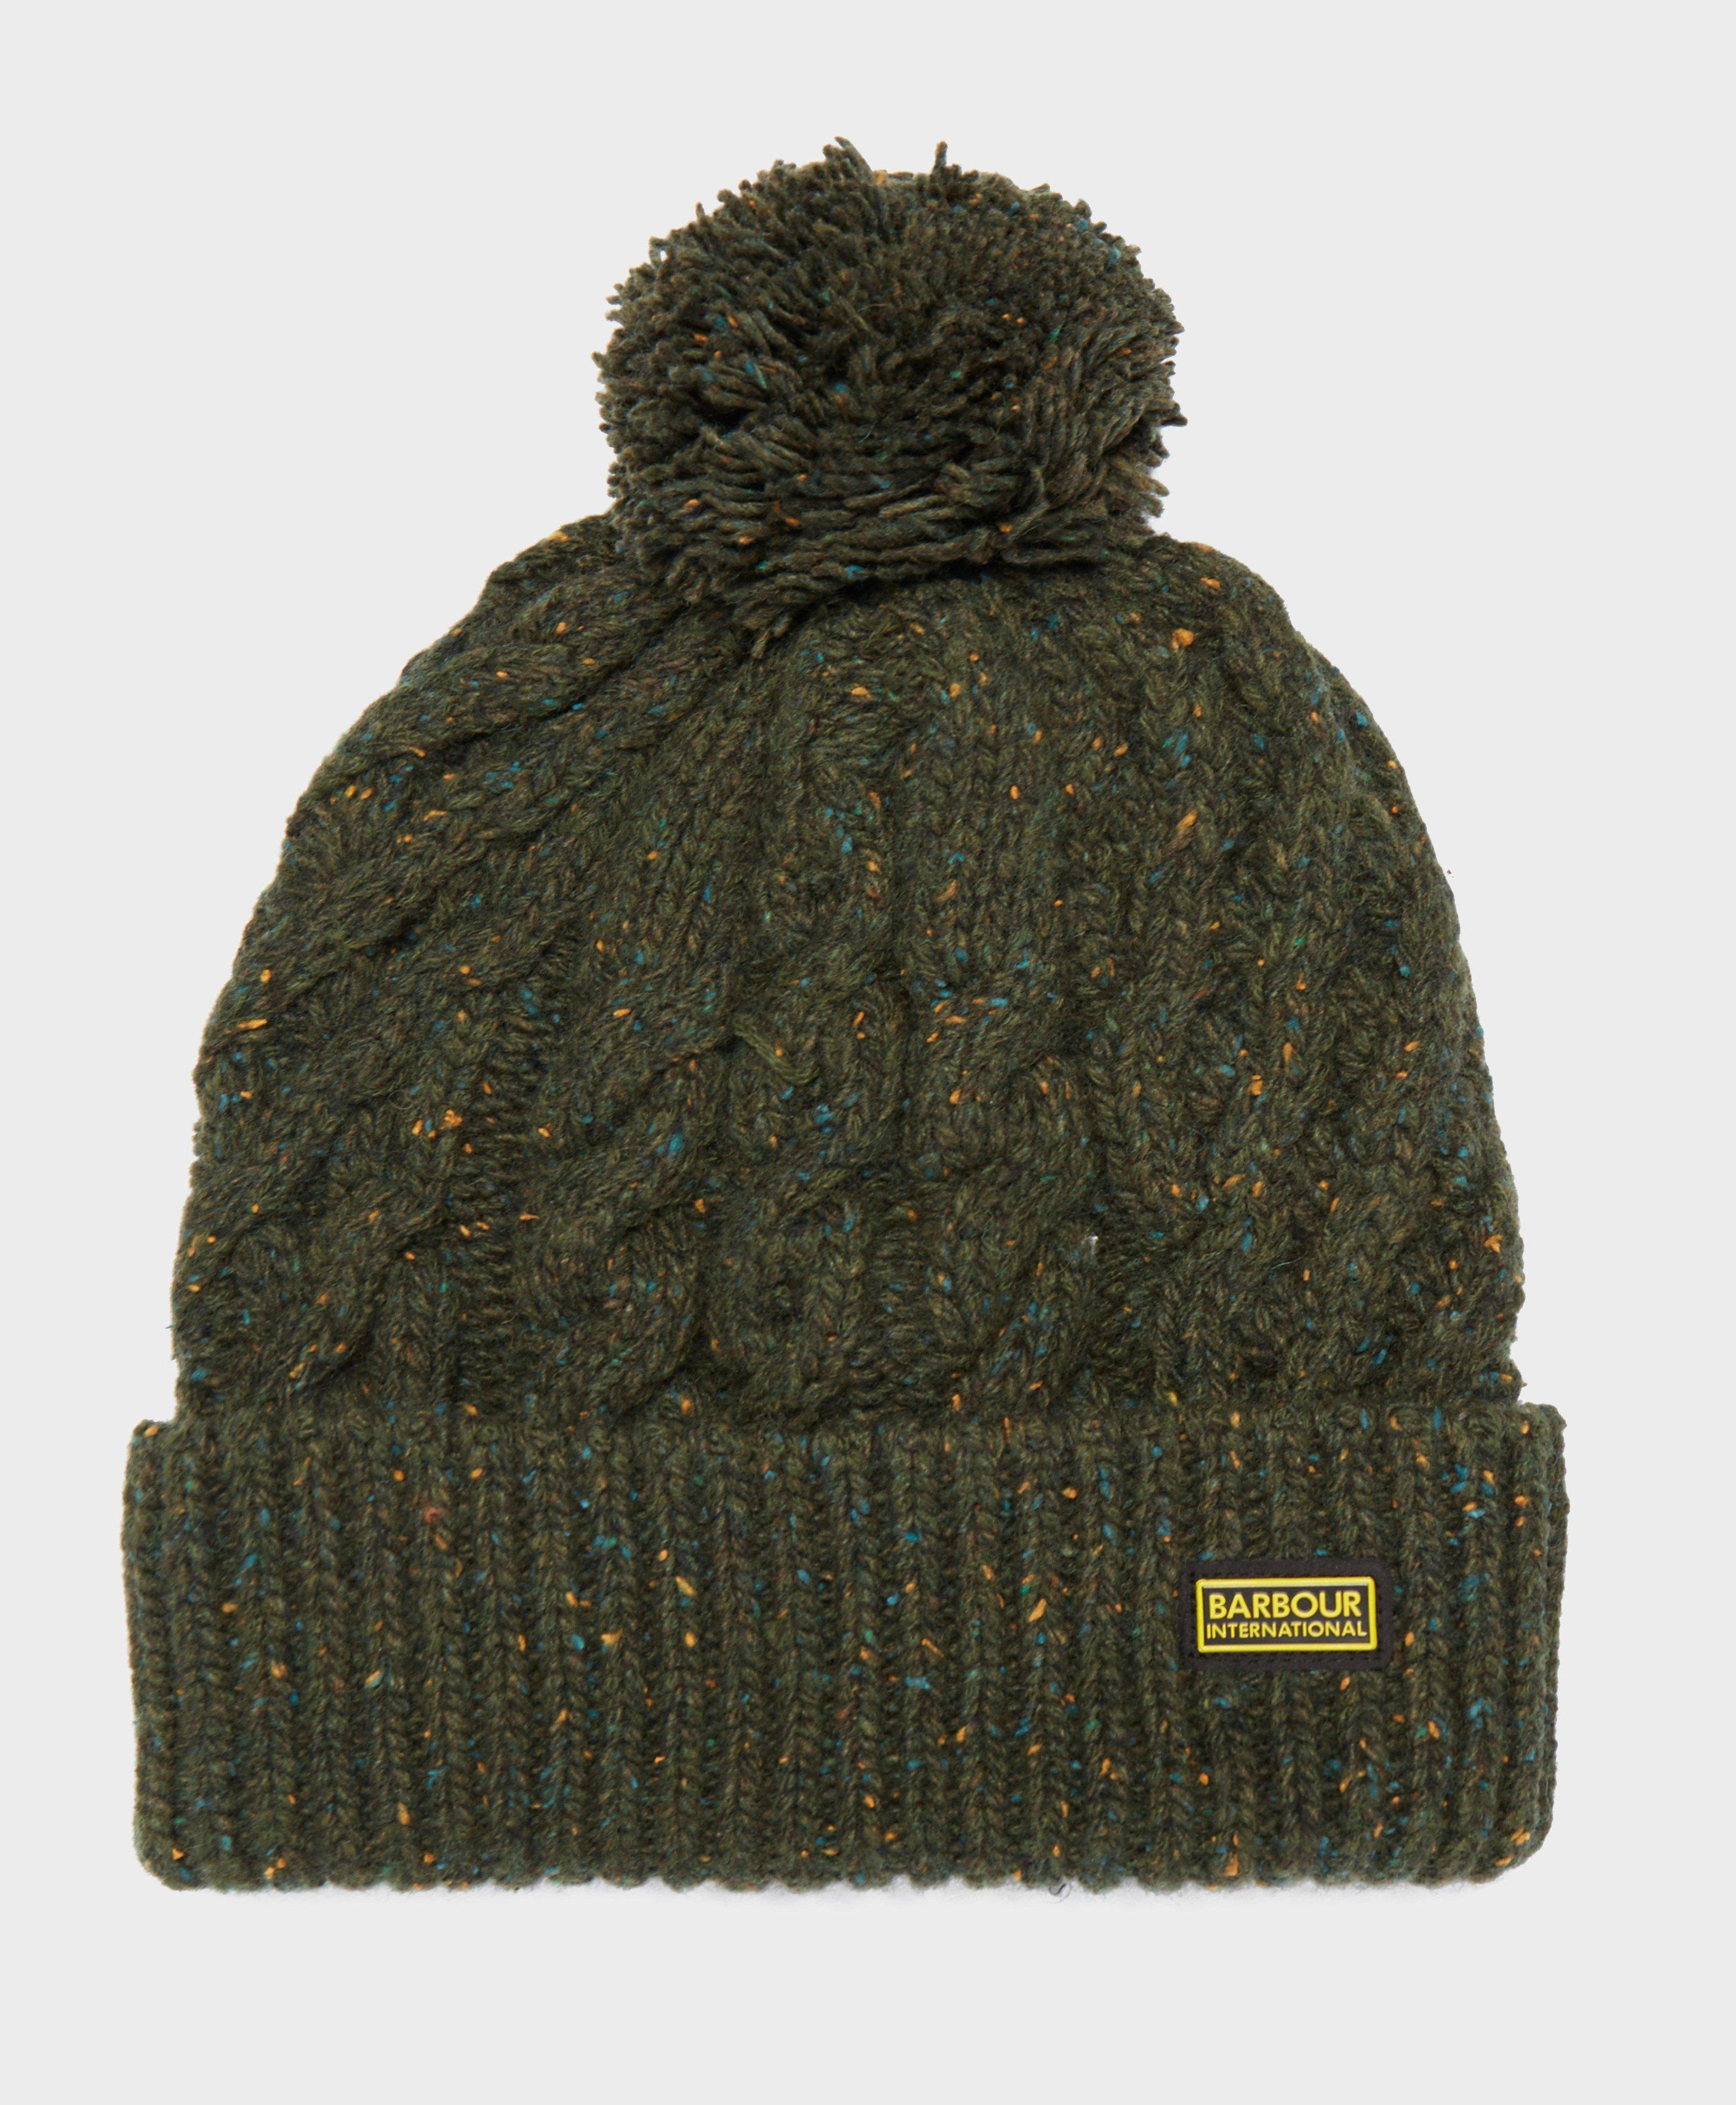 5cb0f6b42 Lyst - Barbour International Bobble Hat in Green for Men